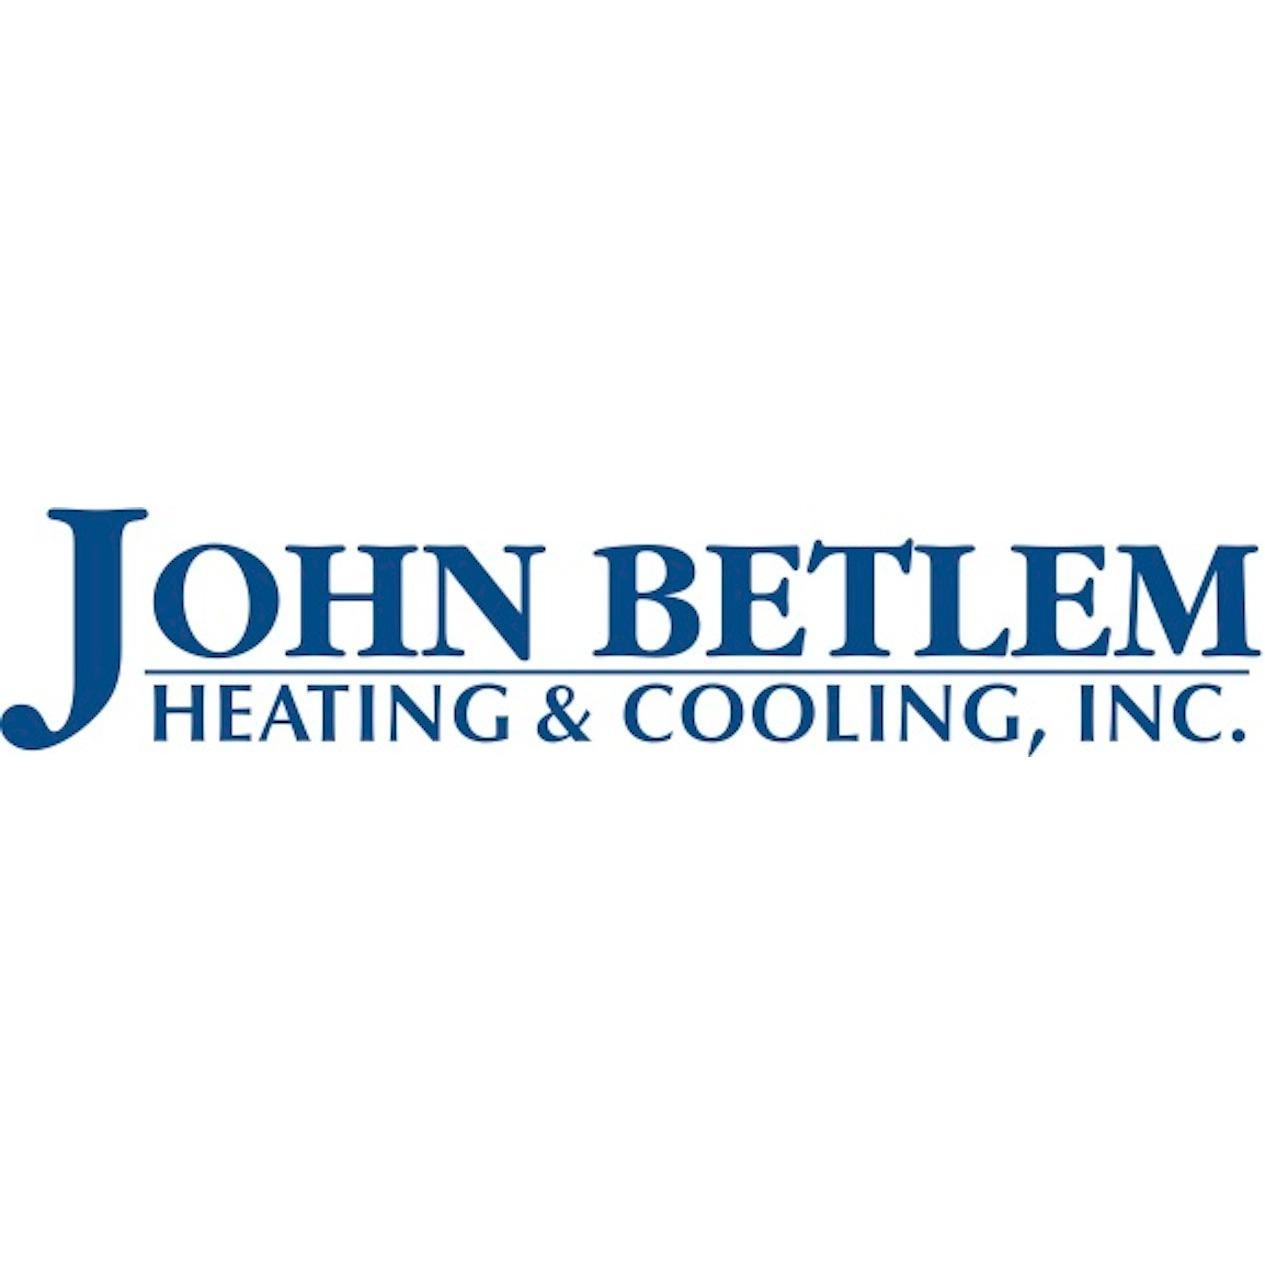 John Betlem Heating & Cooling, Inc.